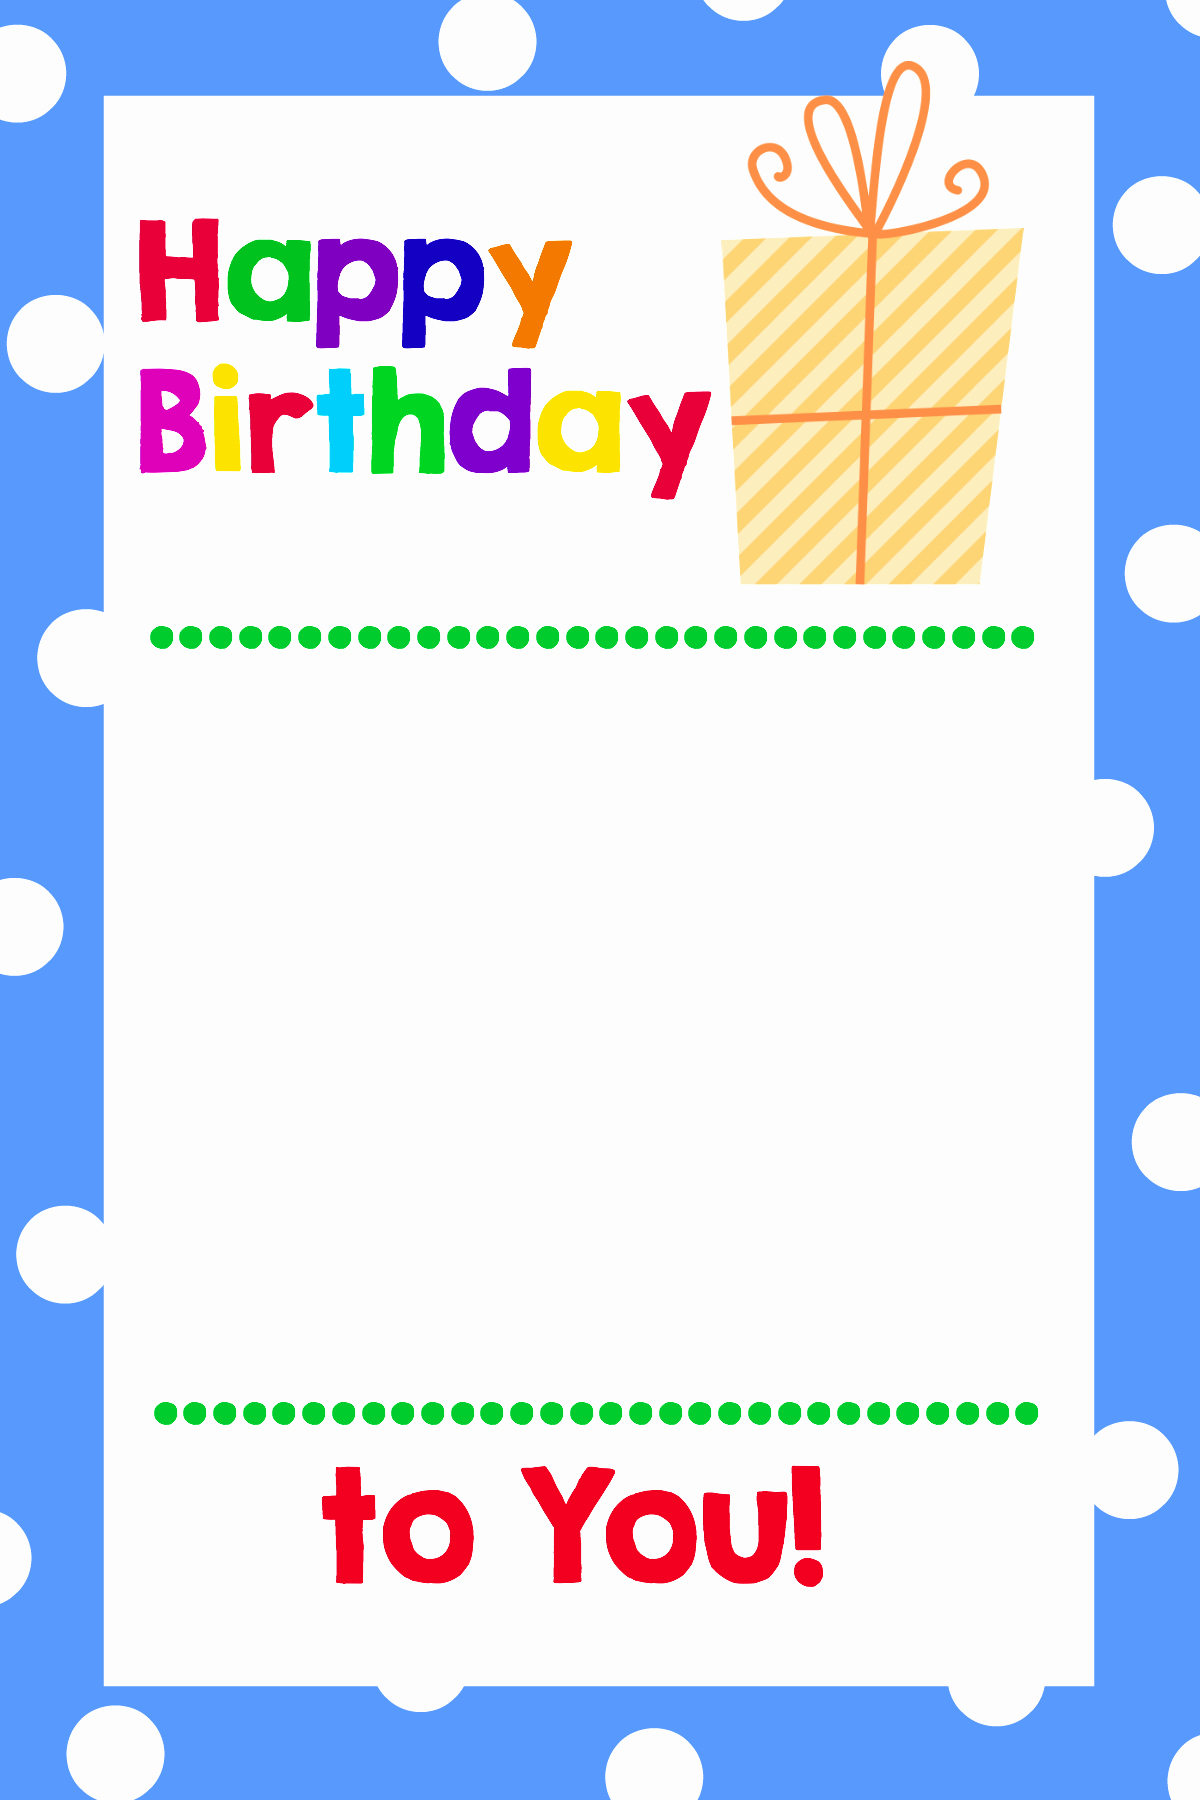 Free Printable Gift Card Template Luxury Printable Birthday Gift Card Holders Crazy Little Projects